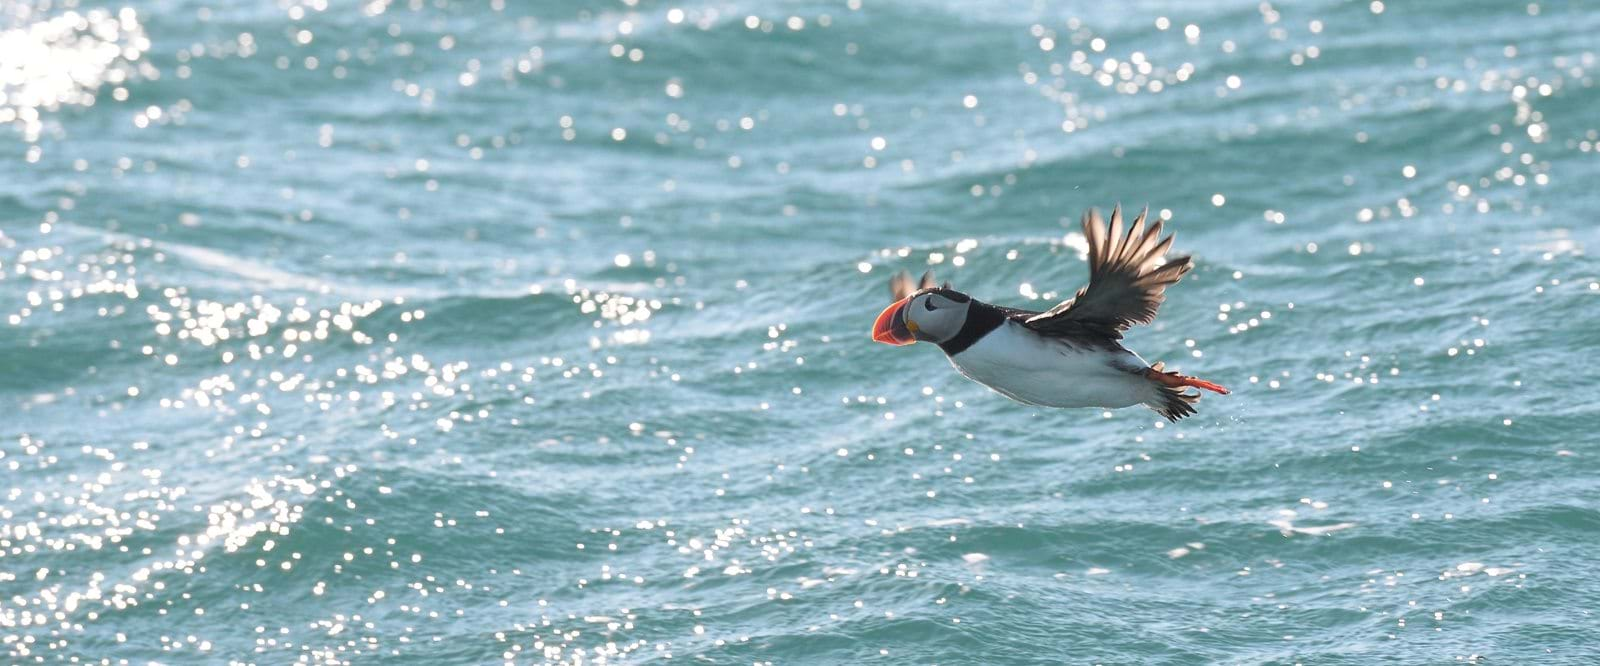 Puffin, Svalbard, Arctic cruise, expedition cruise, polar expedition